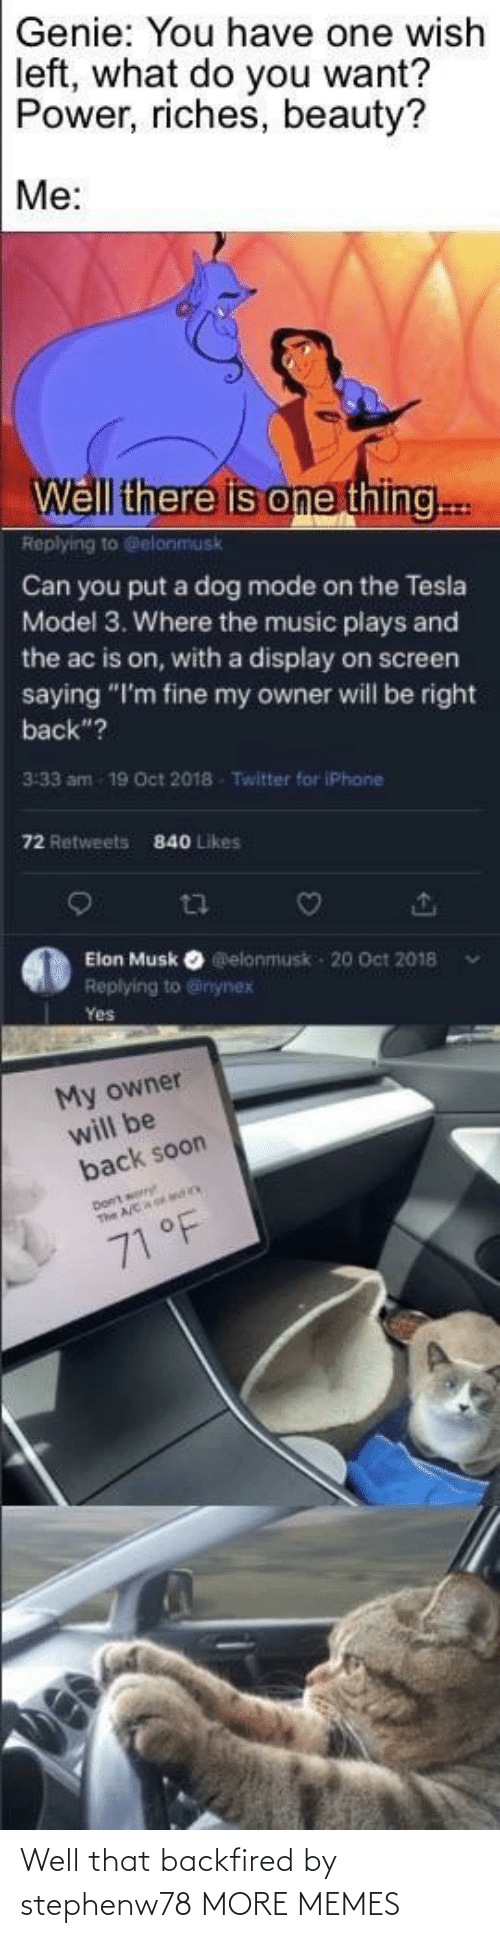 "Dank, Memes, and Music: Genie: You have one wish  left, what do you want?  Power, riches, beauty?  Me:  Well there is one thing..  Replying to Gelonmusk  Can you put a dog mode on the Tesla  Model 3. Where the music plays and  the ac is on, with a display on screen  saying ""I'm fine my owner will be right  back""?  3:33 am  19 Oct 2018  Twitter for iPhane  72 Retweets  840 Likes  Elon Musk O elonmusk - 20 Oct 2018  Replying to @inynex  Yes  My owner  will be  back soon  71 °F Well that backfired by stephenw78 MORE MEMES"